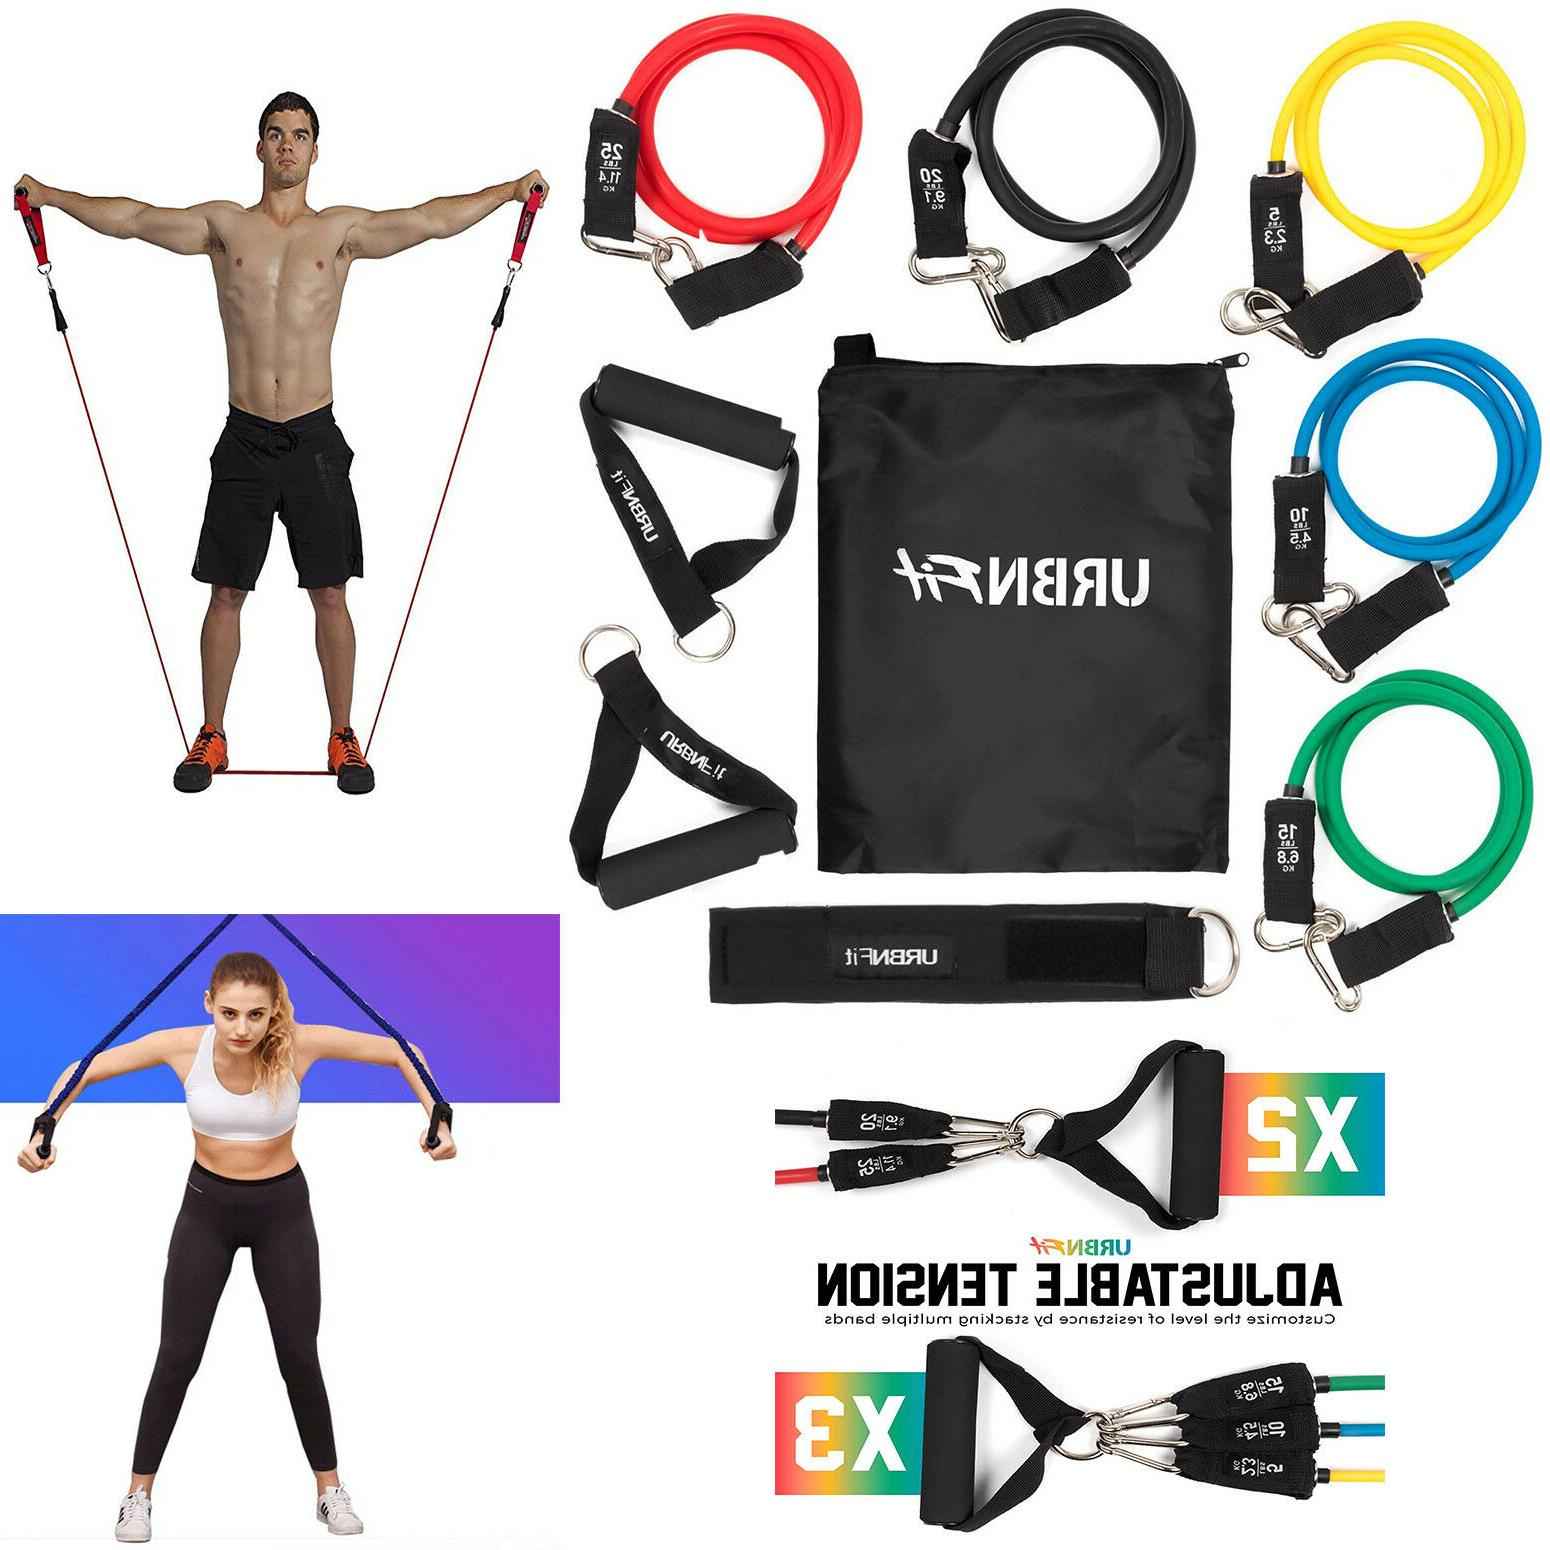 URBNFit Bands Includes Anchor, Ankle & Exercise Guide Carrying for Training